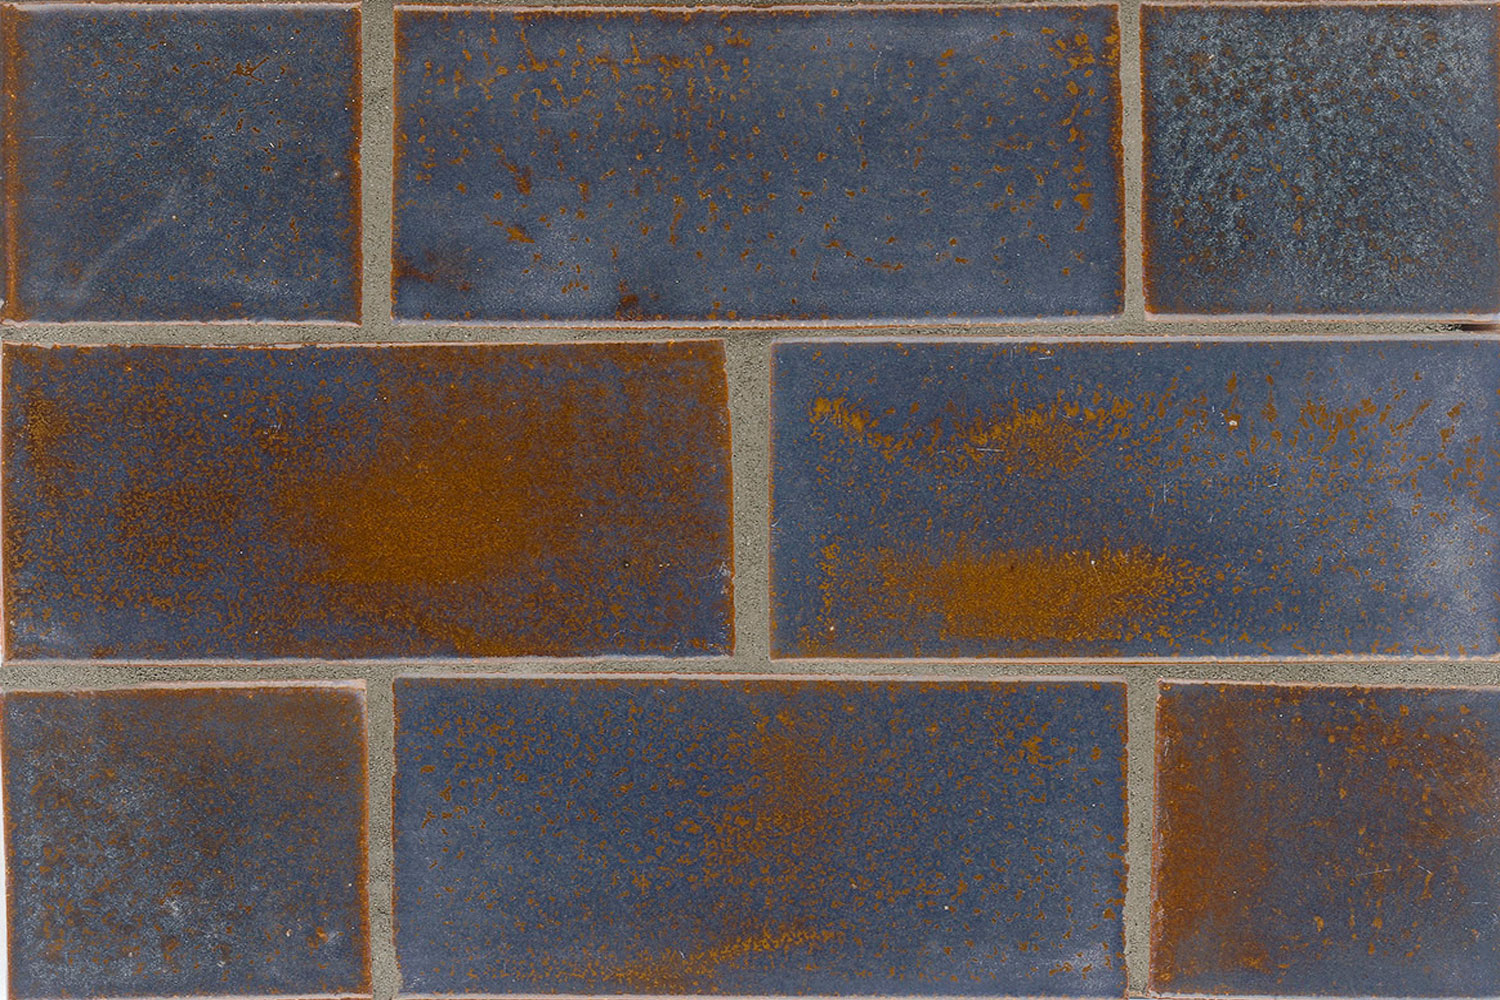 Coco Moon subway tile 3x6